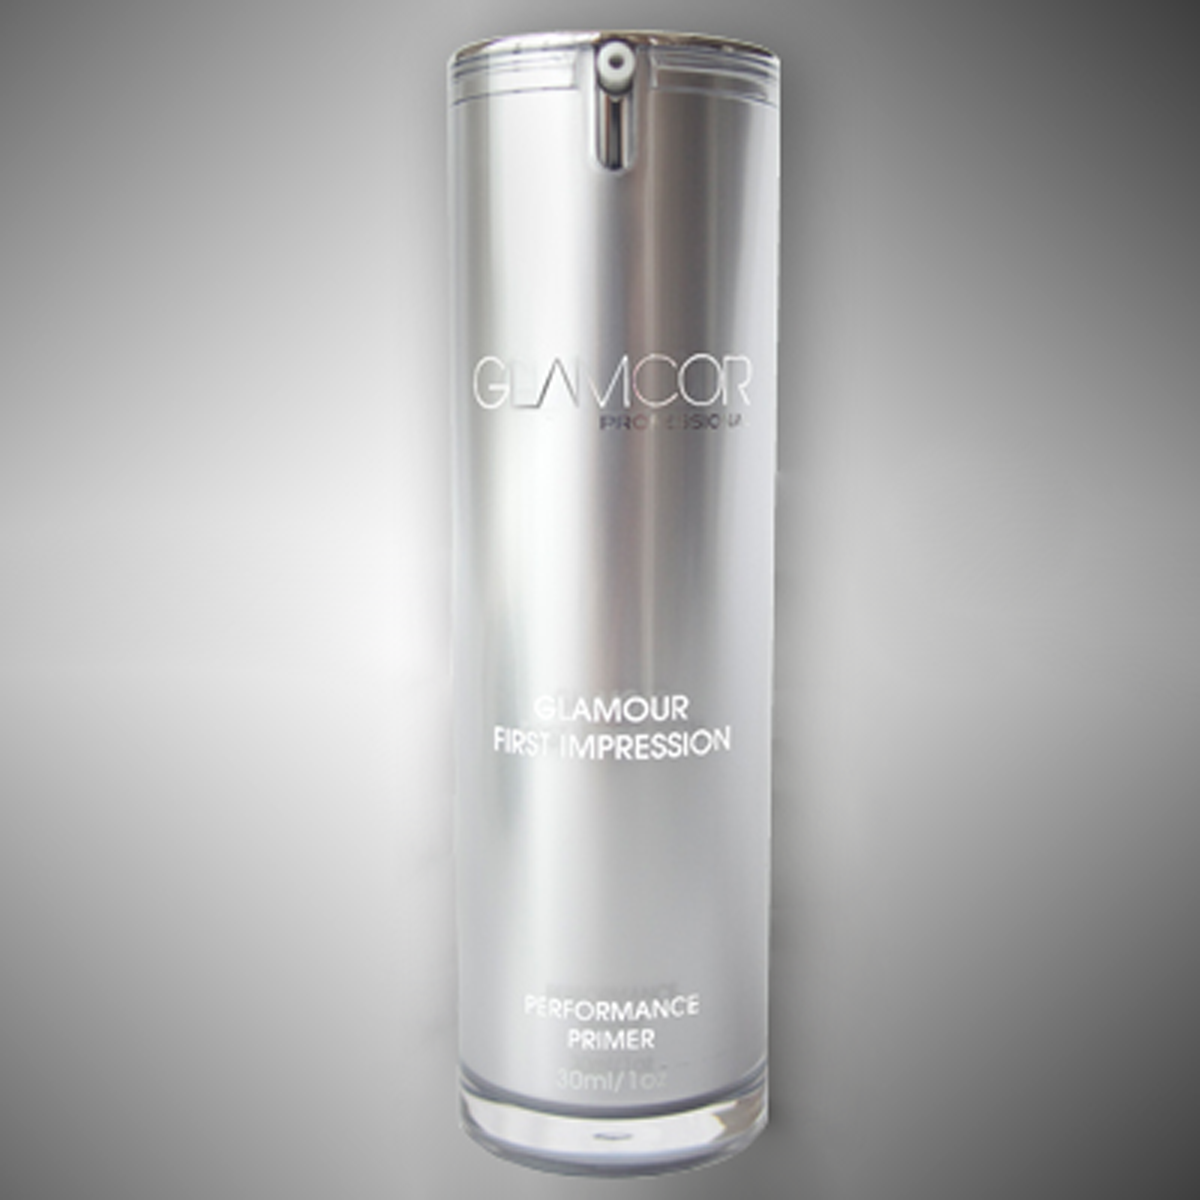 FIRST IMPRESSION PRIMER by GLAMCOR